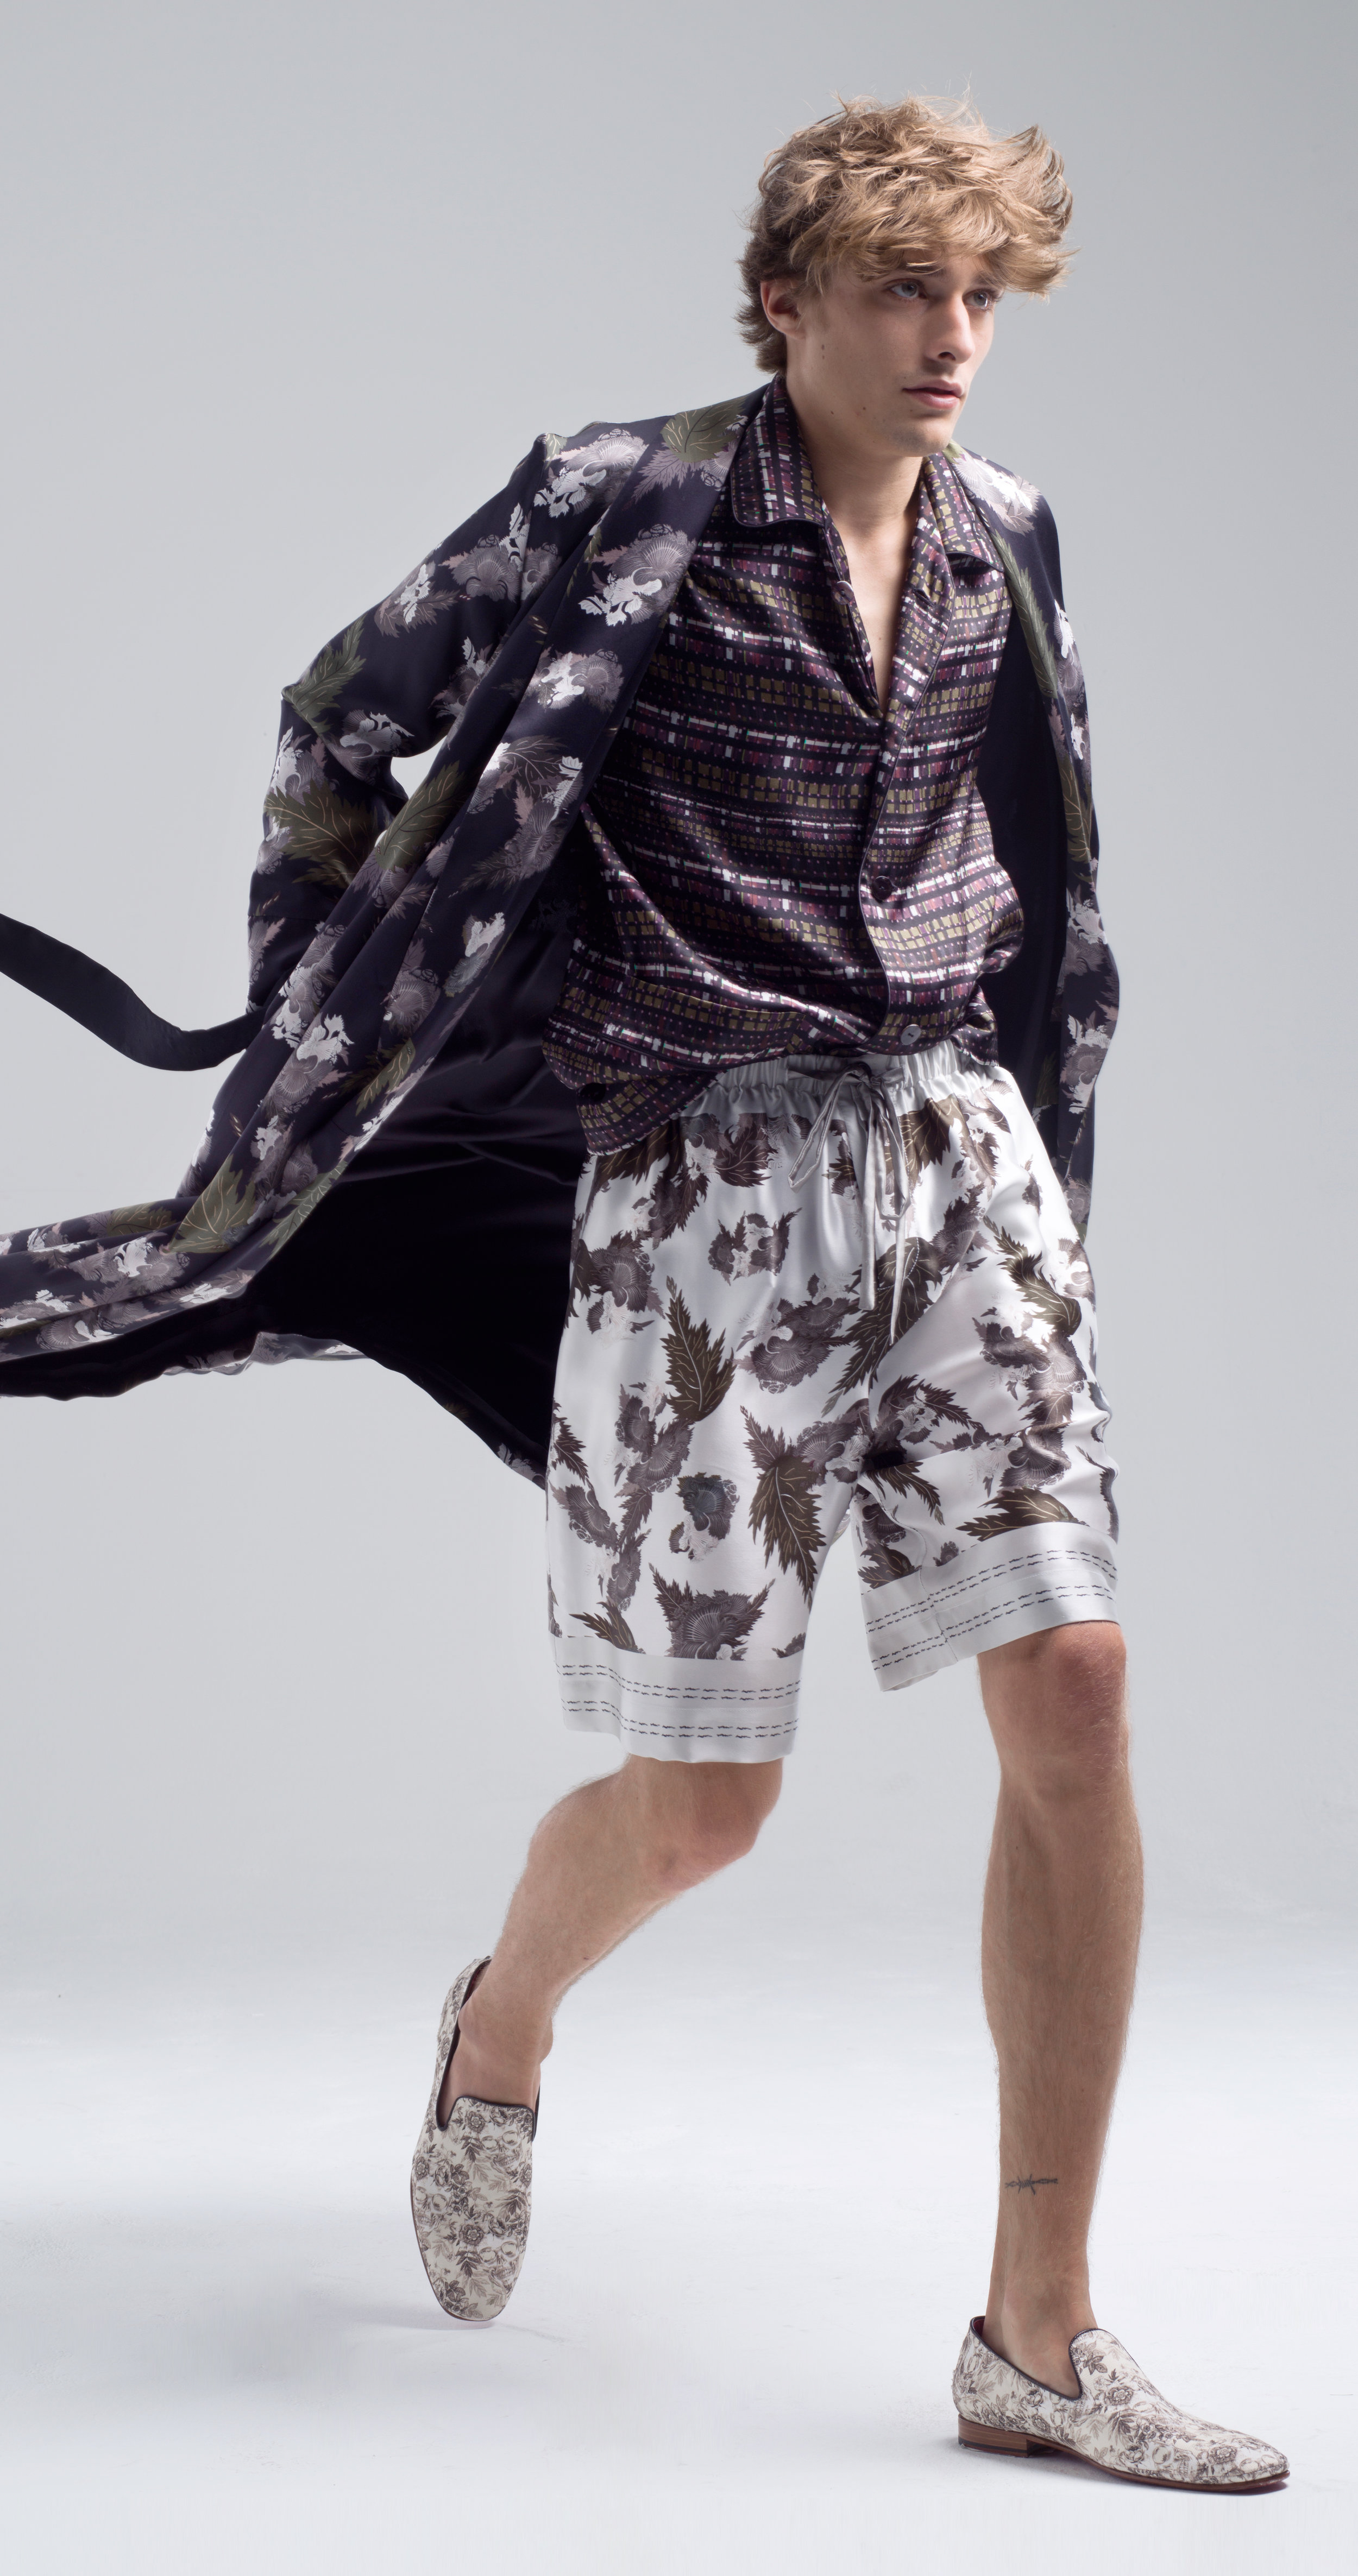 MENG Menswear Illuminated Shadows Botanical Print Kimono and Shorts with Geometric Shirt